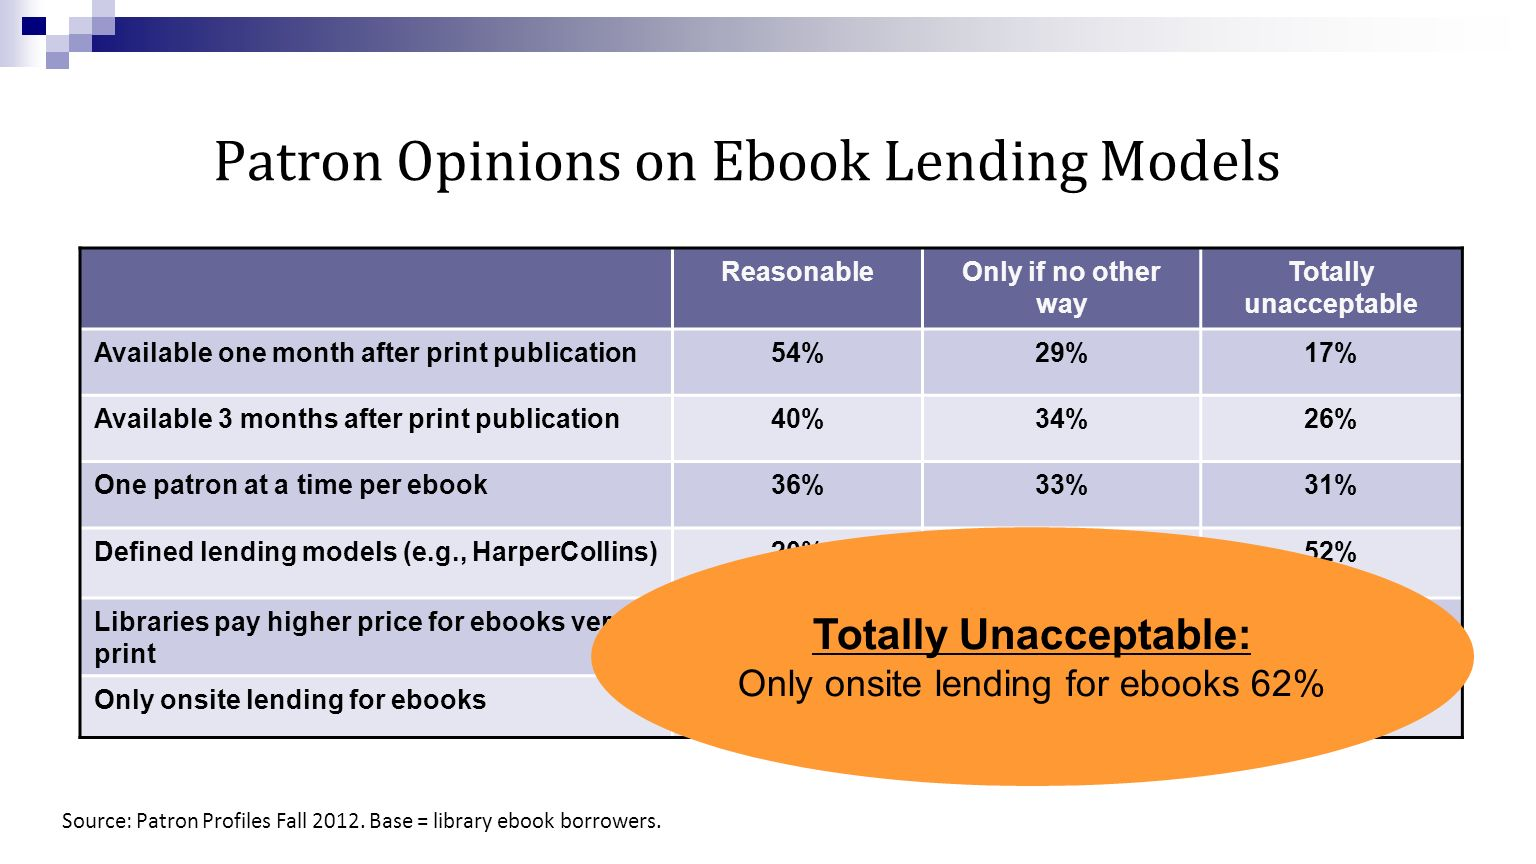 Patron Opinions on Ebook Lending Models ReasonableOnly if no other way Totally unacceptable Available one month after print publication54%29%17% Available 3 months after print publication40%34%26% One patron at a time per ebook36%33%31% Defined lending models (e.g., HarperCollins)20%28%52% Libraries pay higher price for ebooks versus print 15%32%53% Only onsite lending for ebooks15%23%62% Source: Patron Profiles Fall 2012.